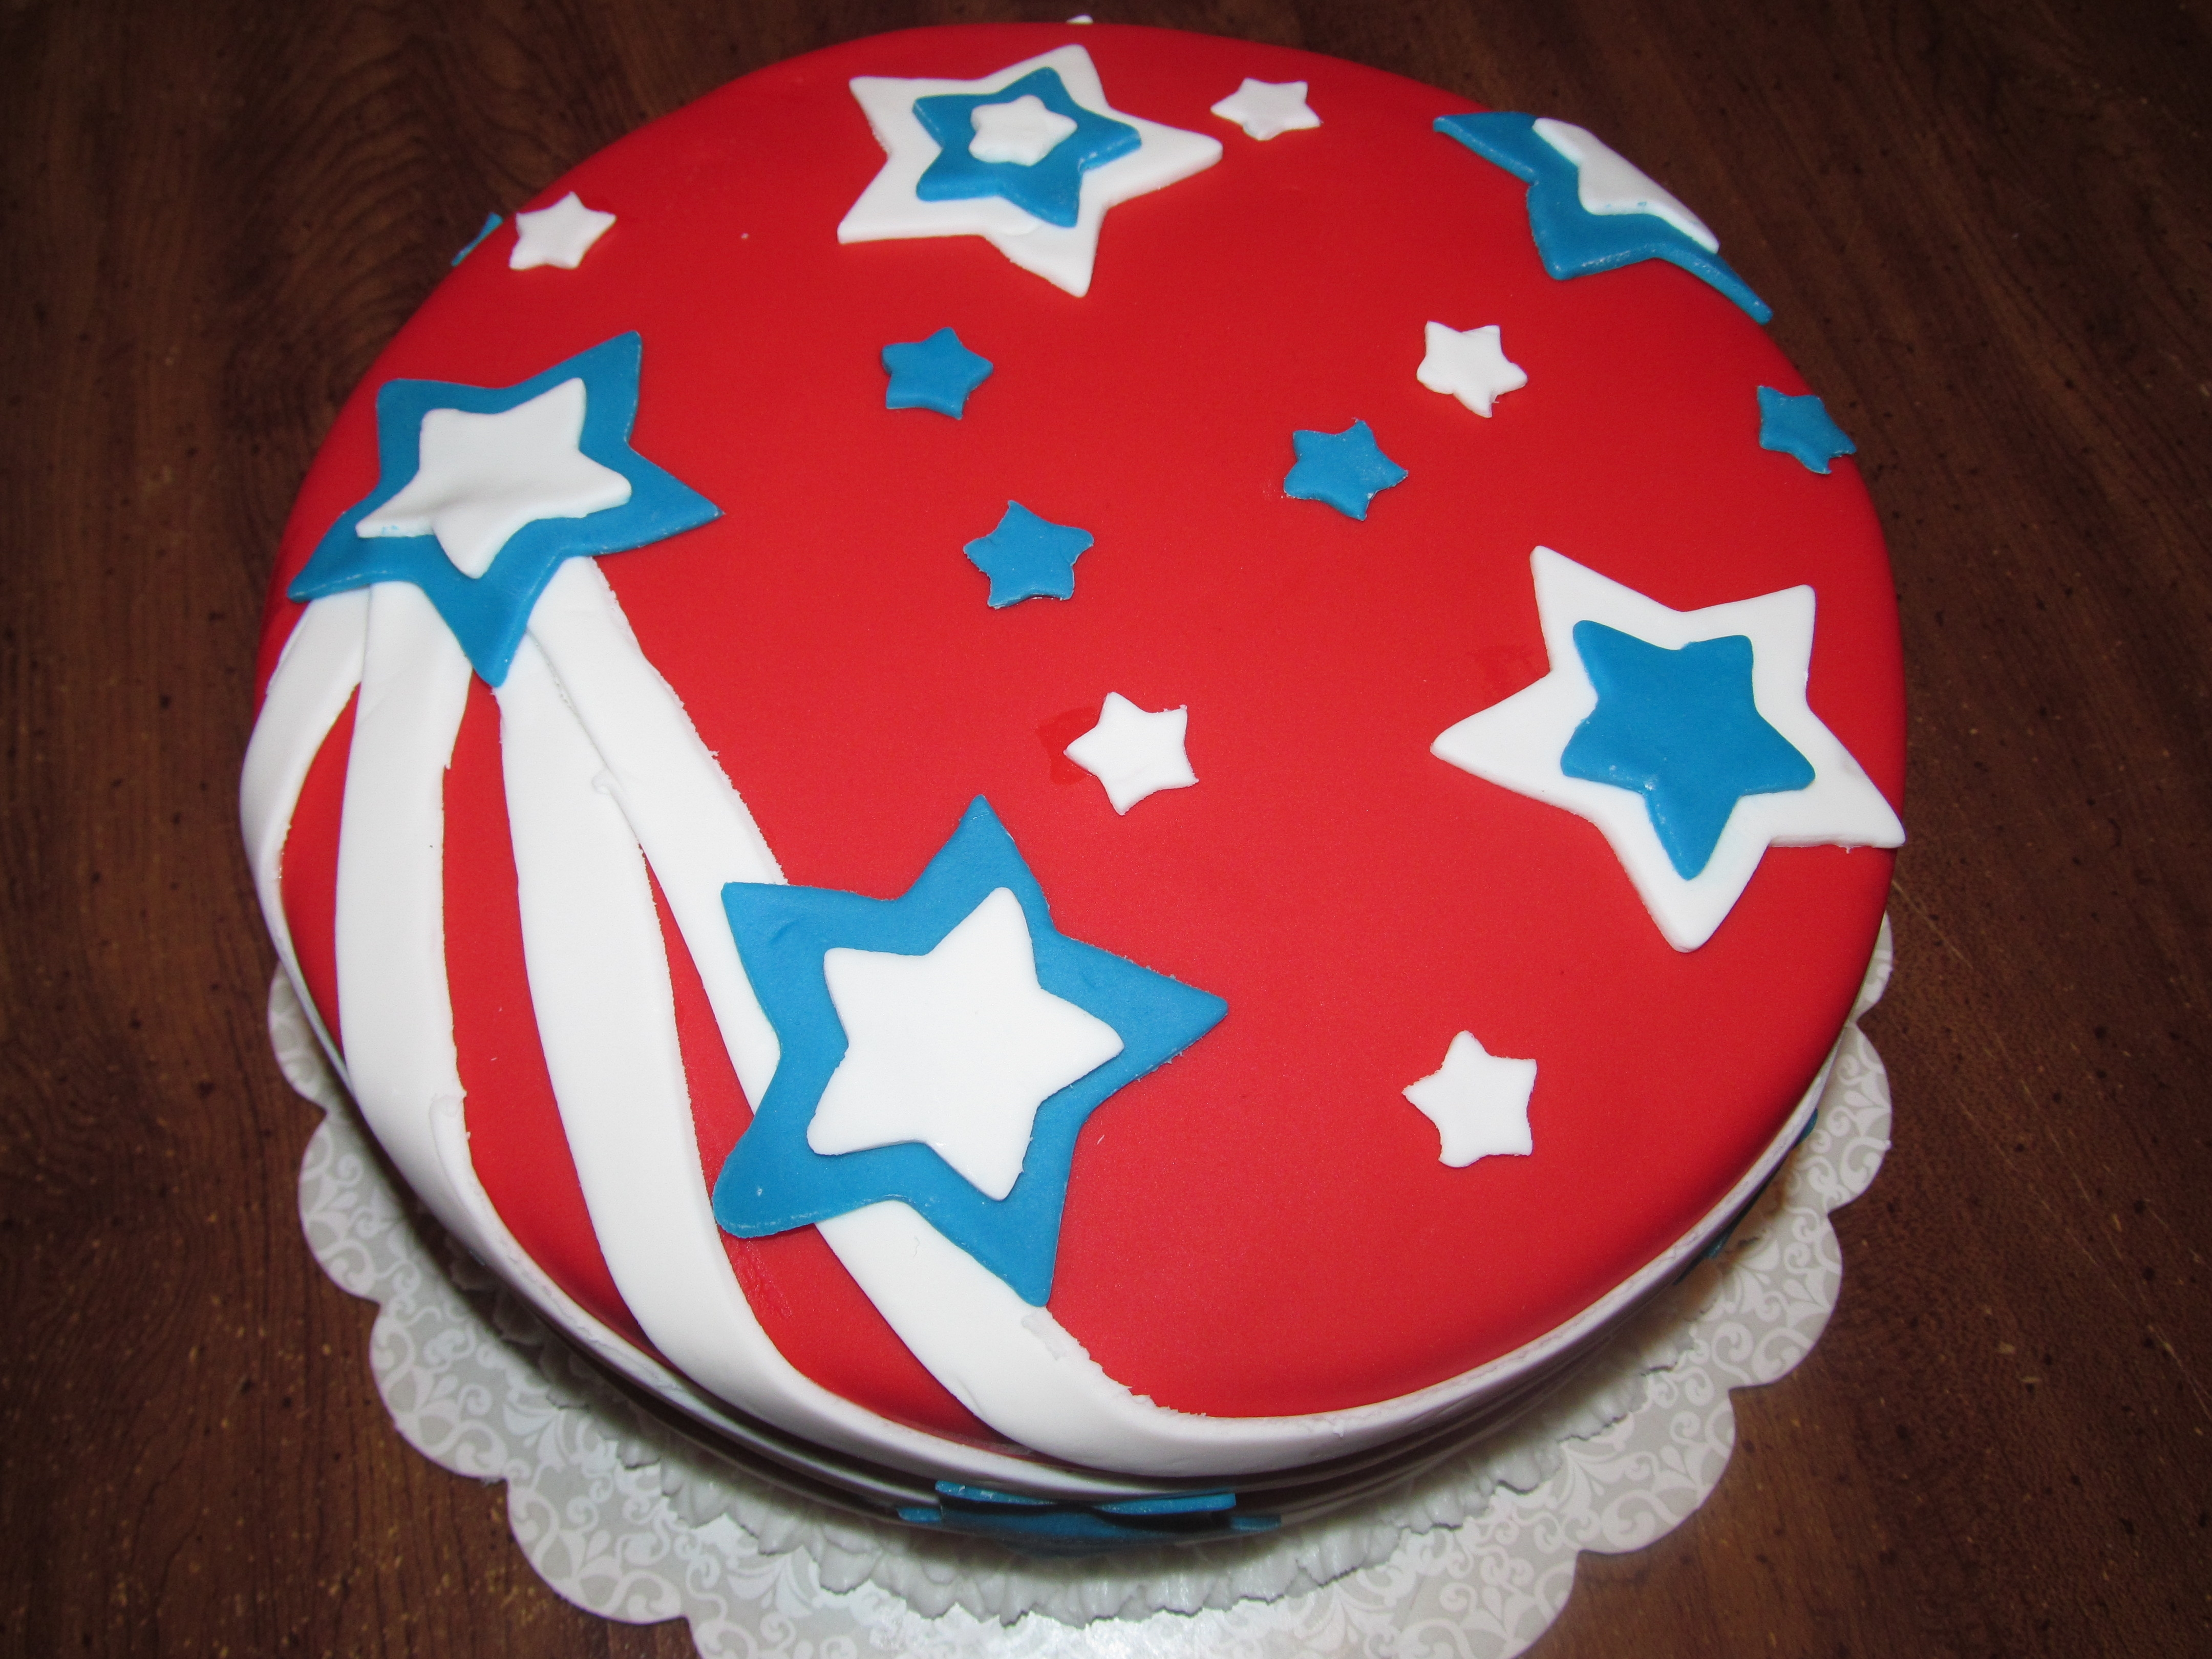 Red, white and blue 4th of July birthday cake